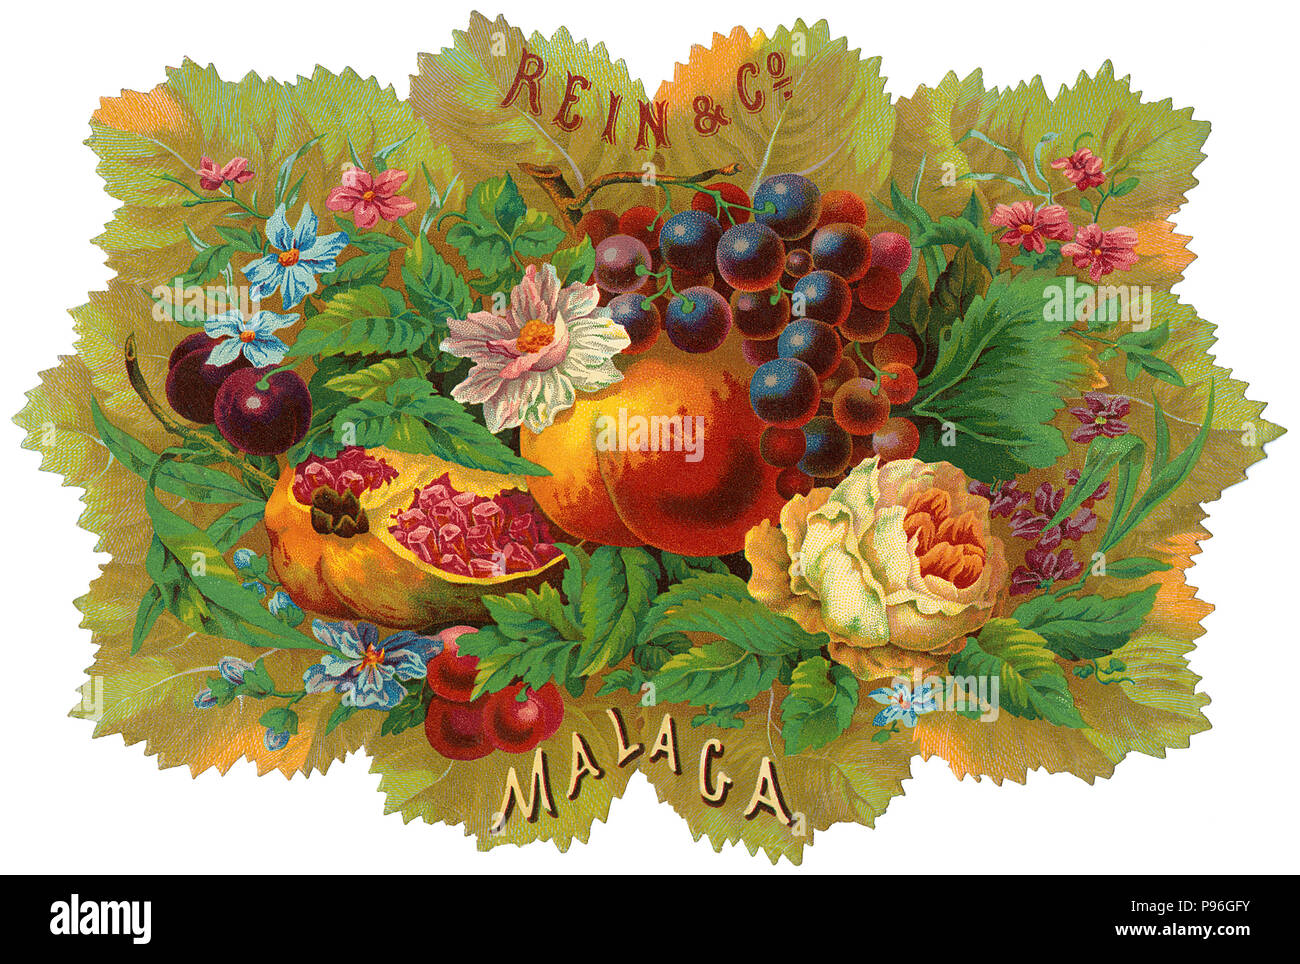 Vintage fruit crate label for Rein & Co, Malaga. - Stock Image